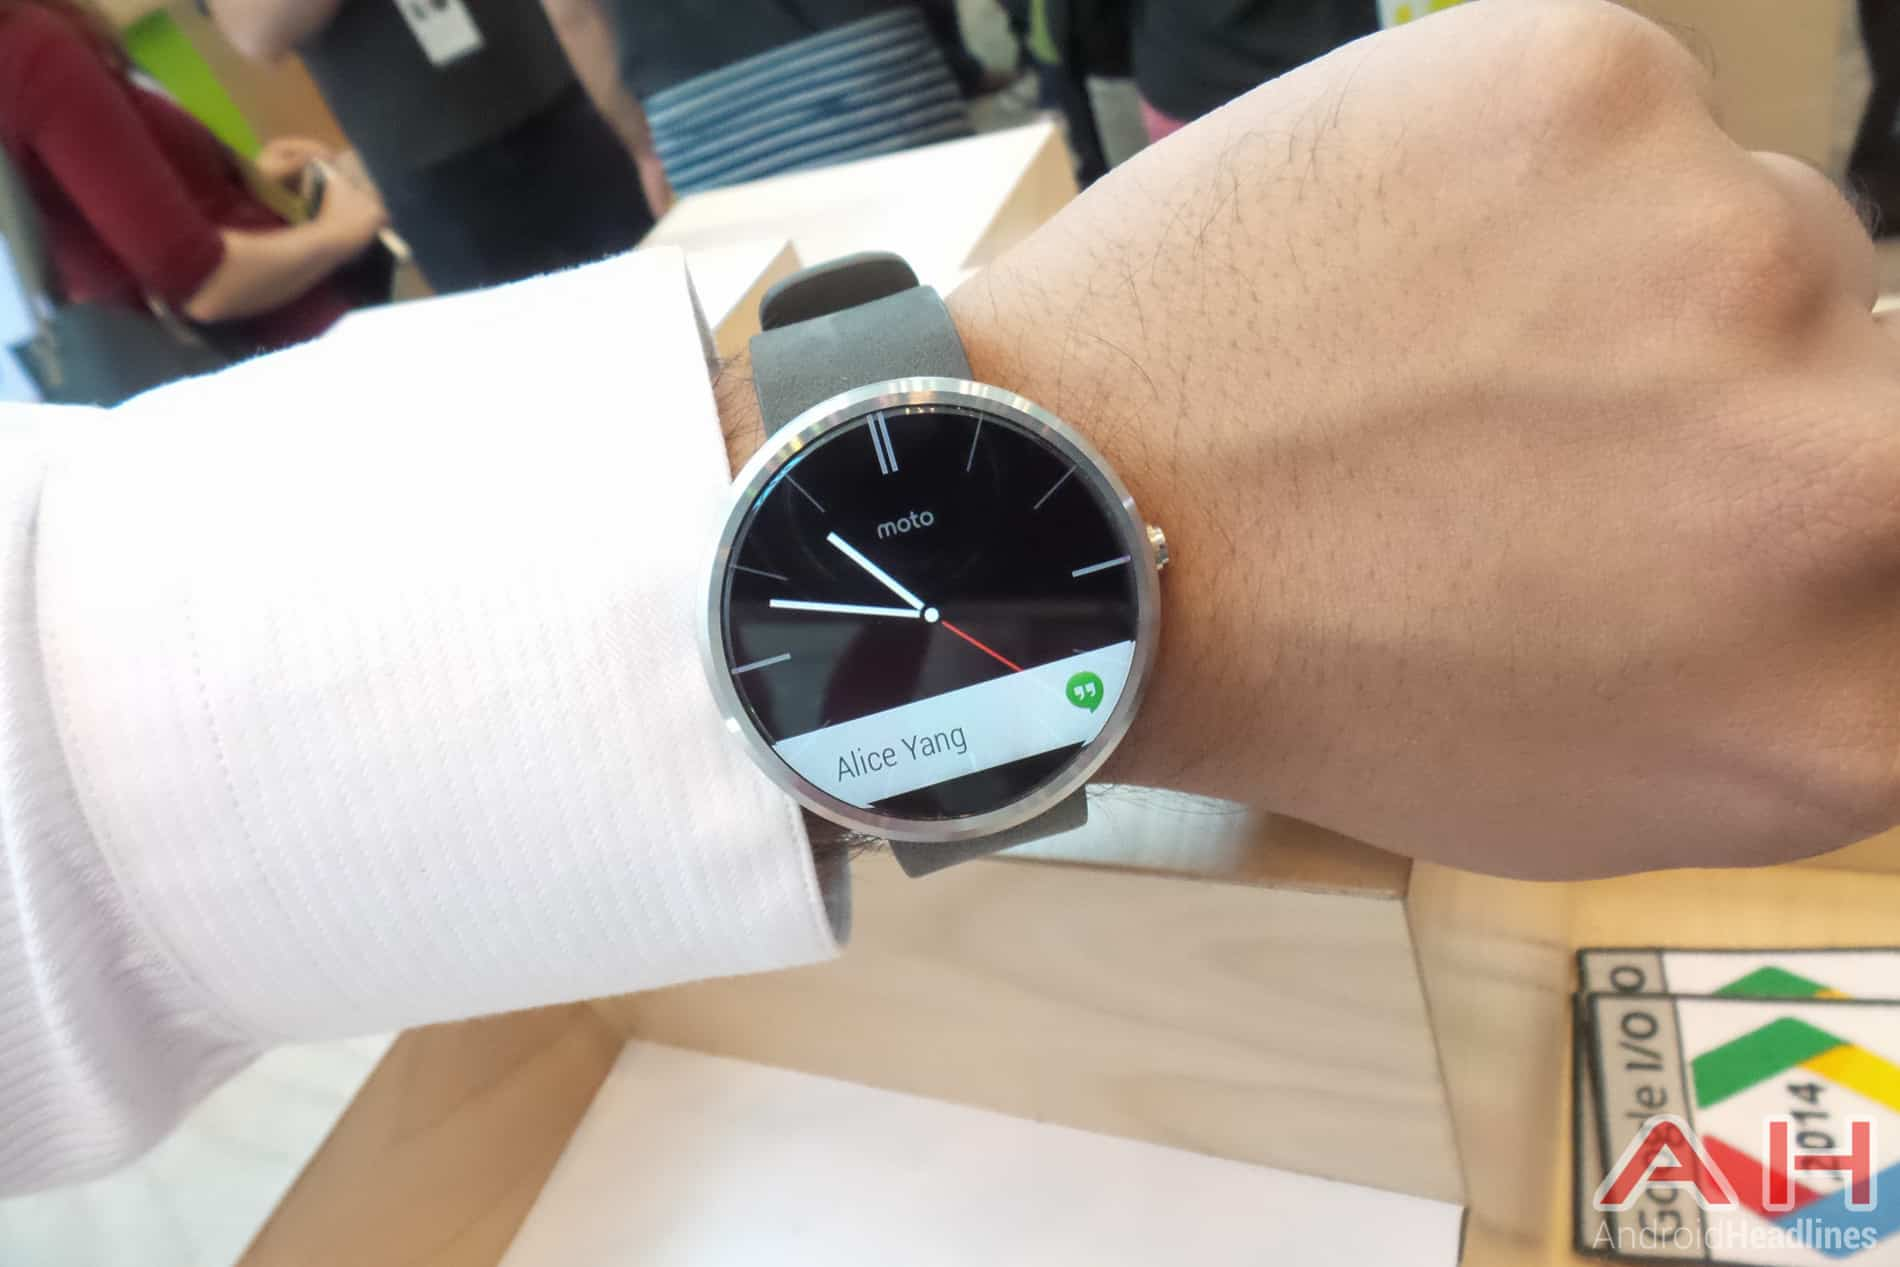 Moto 360 Confirmed To Have Ambient Light Sensor To Auto-Adjust Brightness